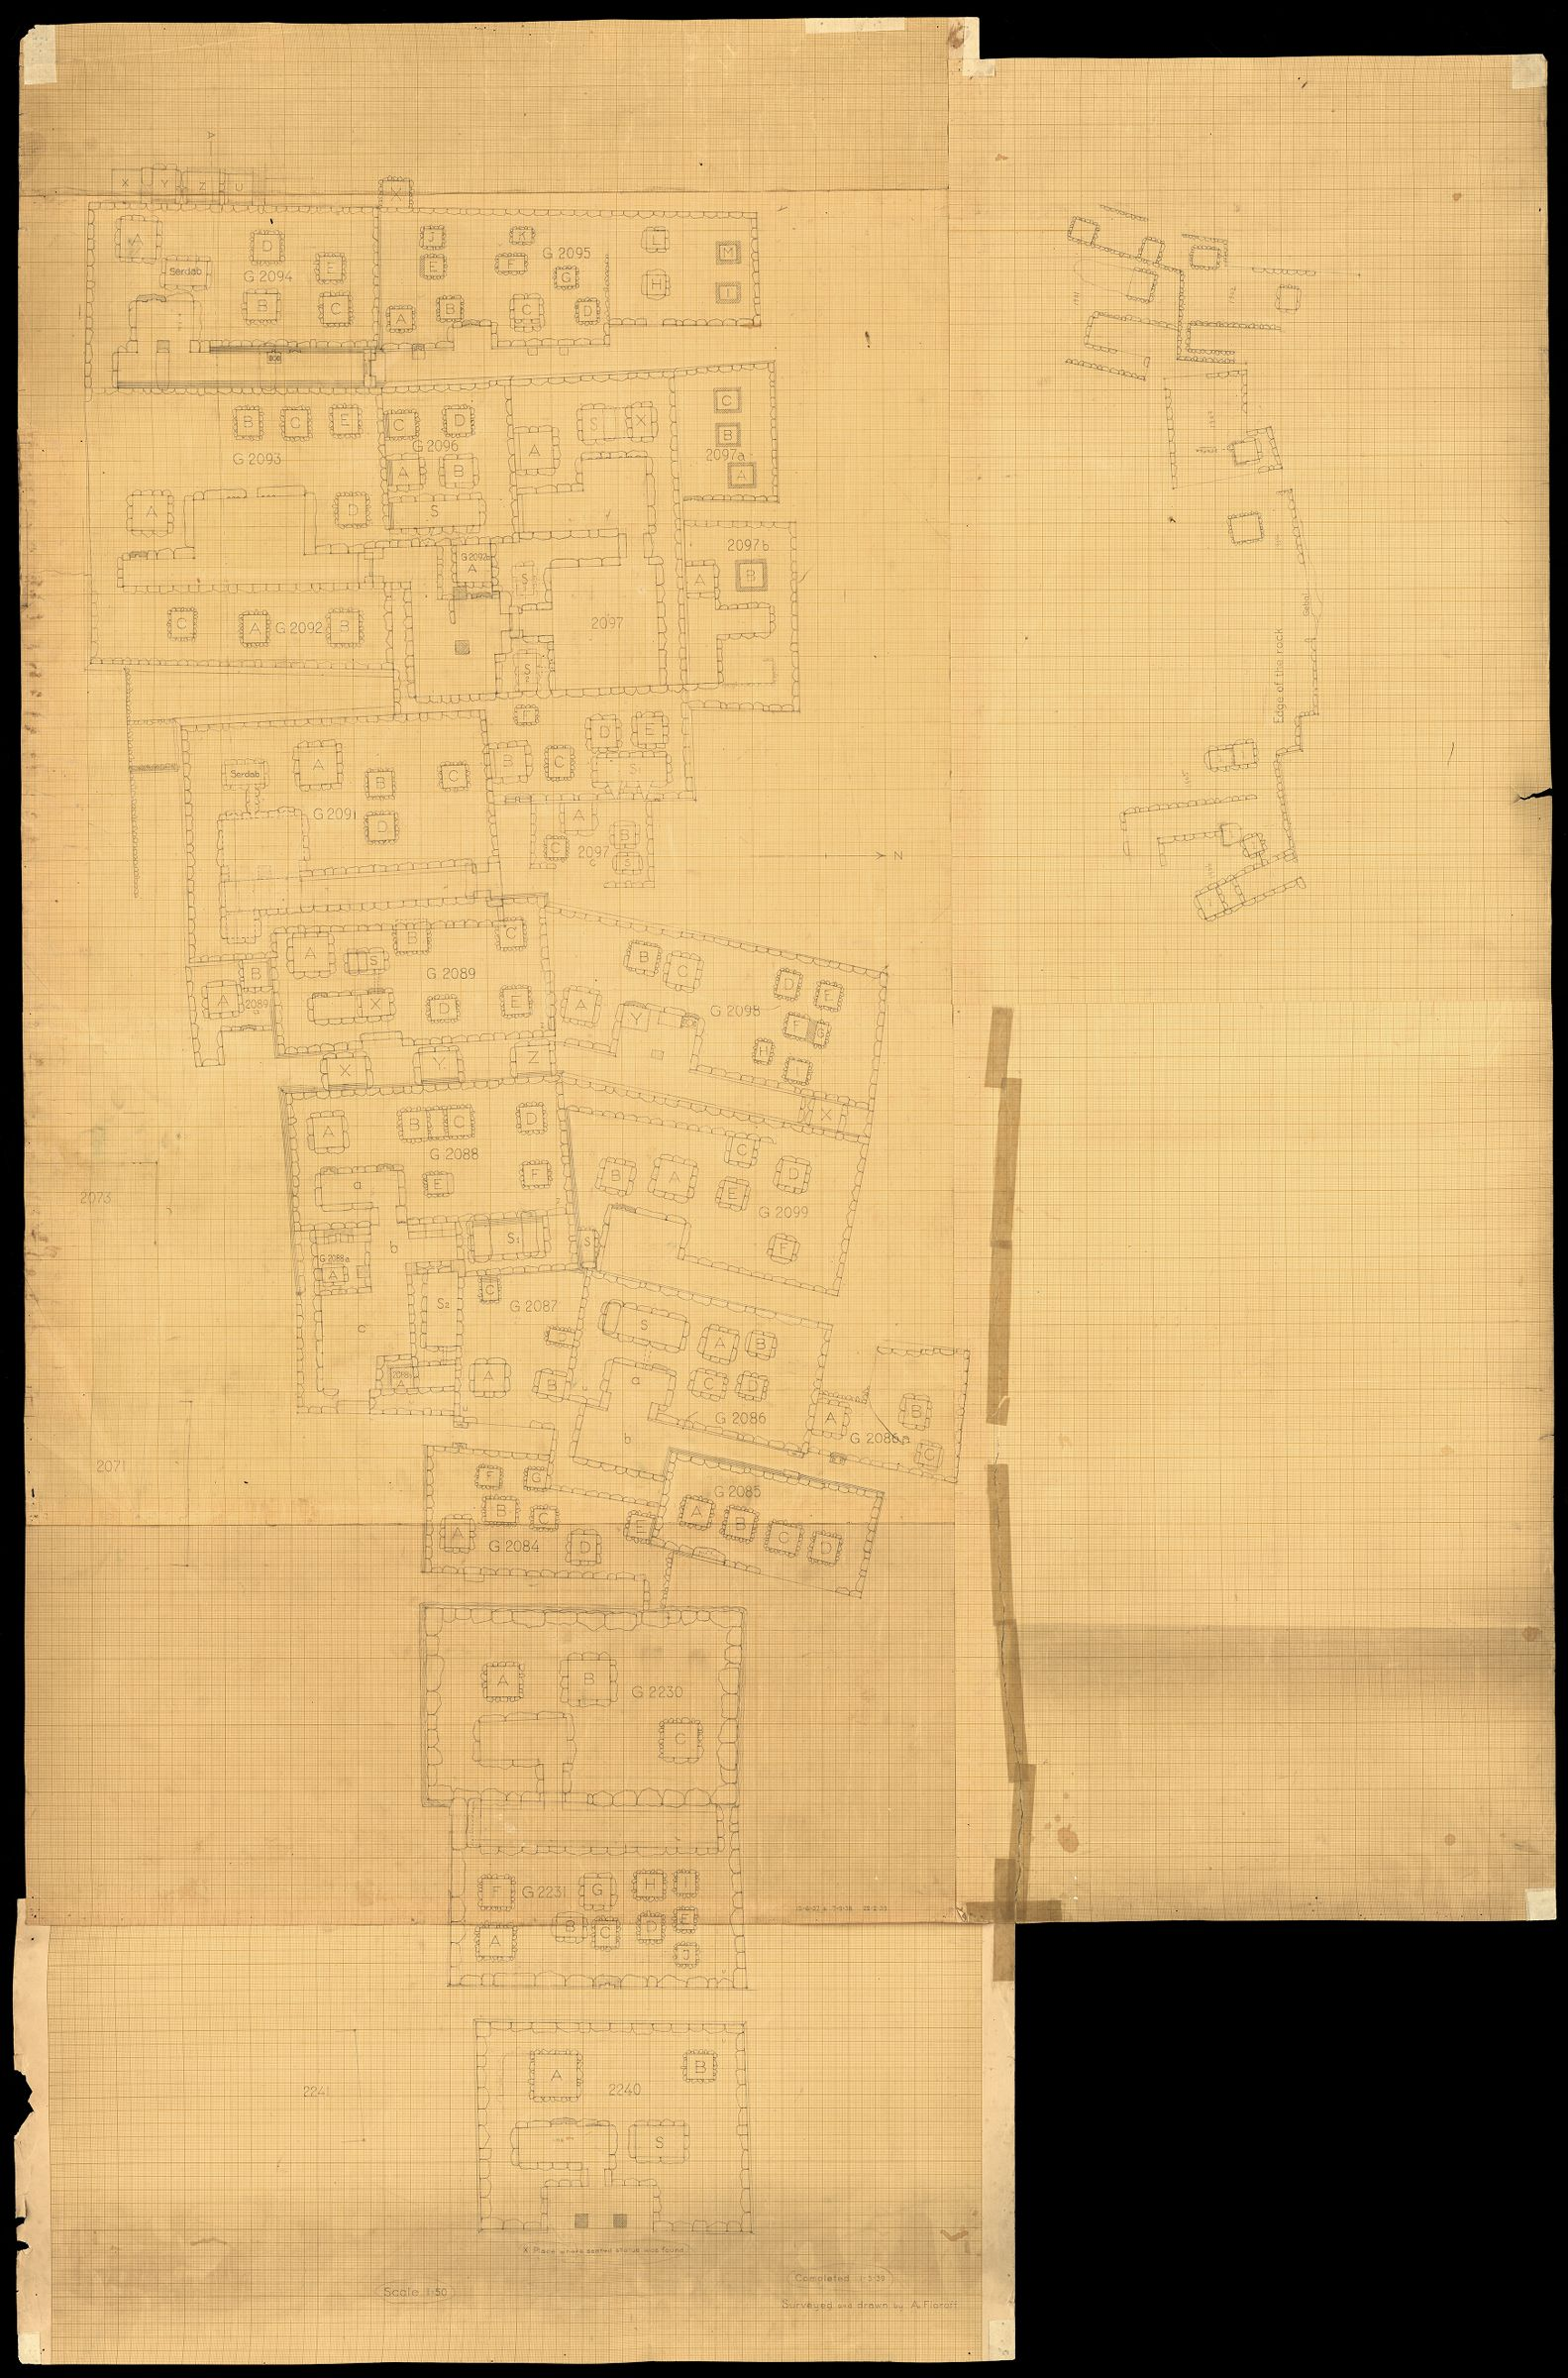 Maps and plans: Plan of Cemetery G 2000, NW part